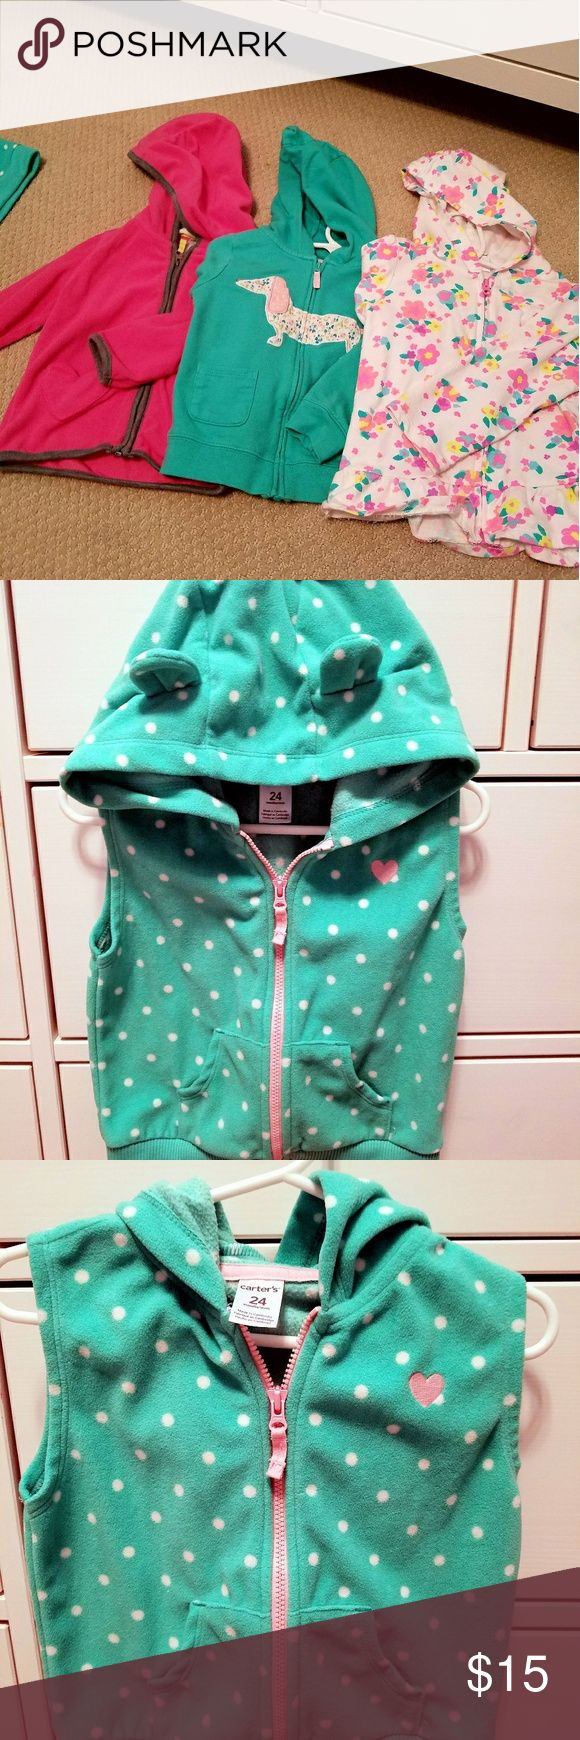 Bundle 4 items: 3 zip up hoodies & 1 zip up vest Bundle of 3 zip up hoodies and 1 zip up vest. All 24 months.  Used but in very good condition. Nice light weight jackets perfect for spring or fall.  Fleece vest by Carter's. Mint green with white polka dots. Hood has small bear ears. Cute with a light pink under shirt.  Pink fleece zip up jacket by Carter's  Green zip up jacket with pink dog made by Carter's. This is made of cotton.  Jumping Bean White with multi colored flowers. Light weight…